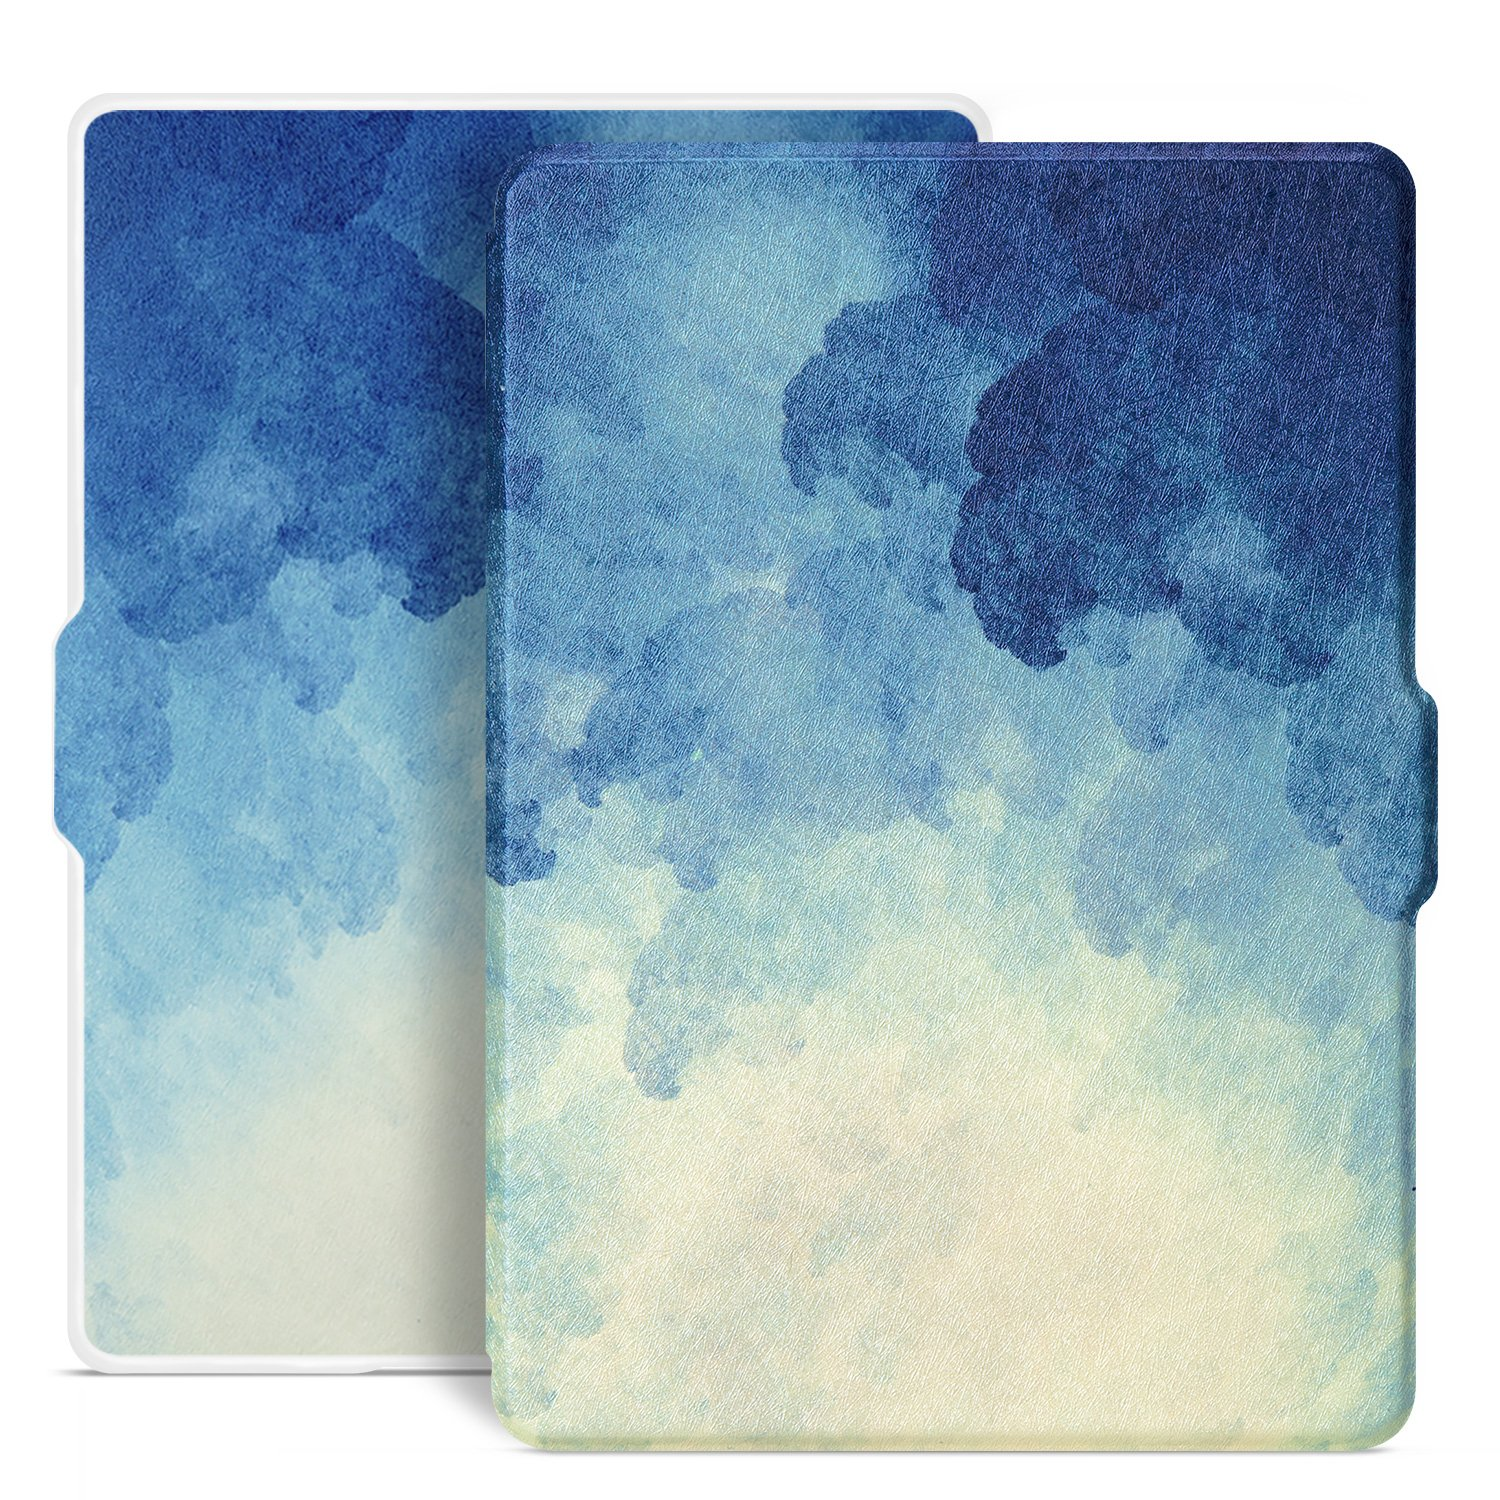 Ayotu Colorful Shell for All-New Kindle(8th Generation, 2016 Release) E-reader Auto Wake and Sleep Smart Protective Cover,Case for All-New Kindle (8th Generation) White Shell K8-9 The Blue Moonlight